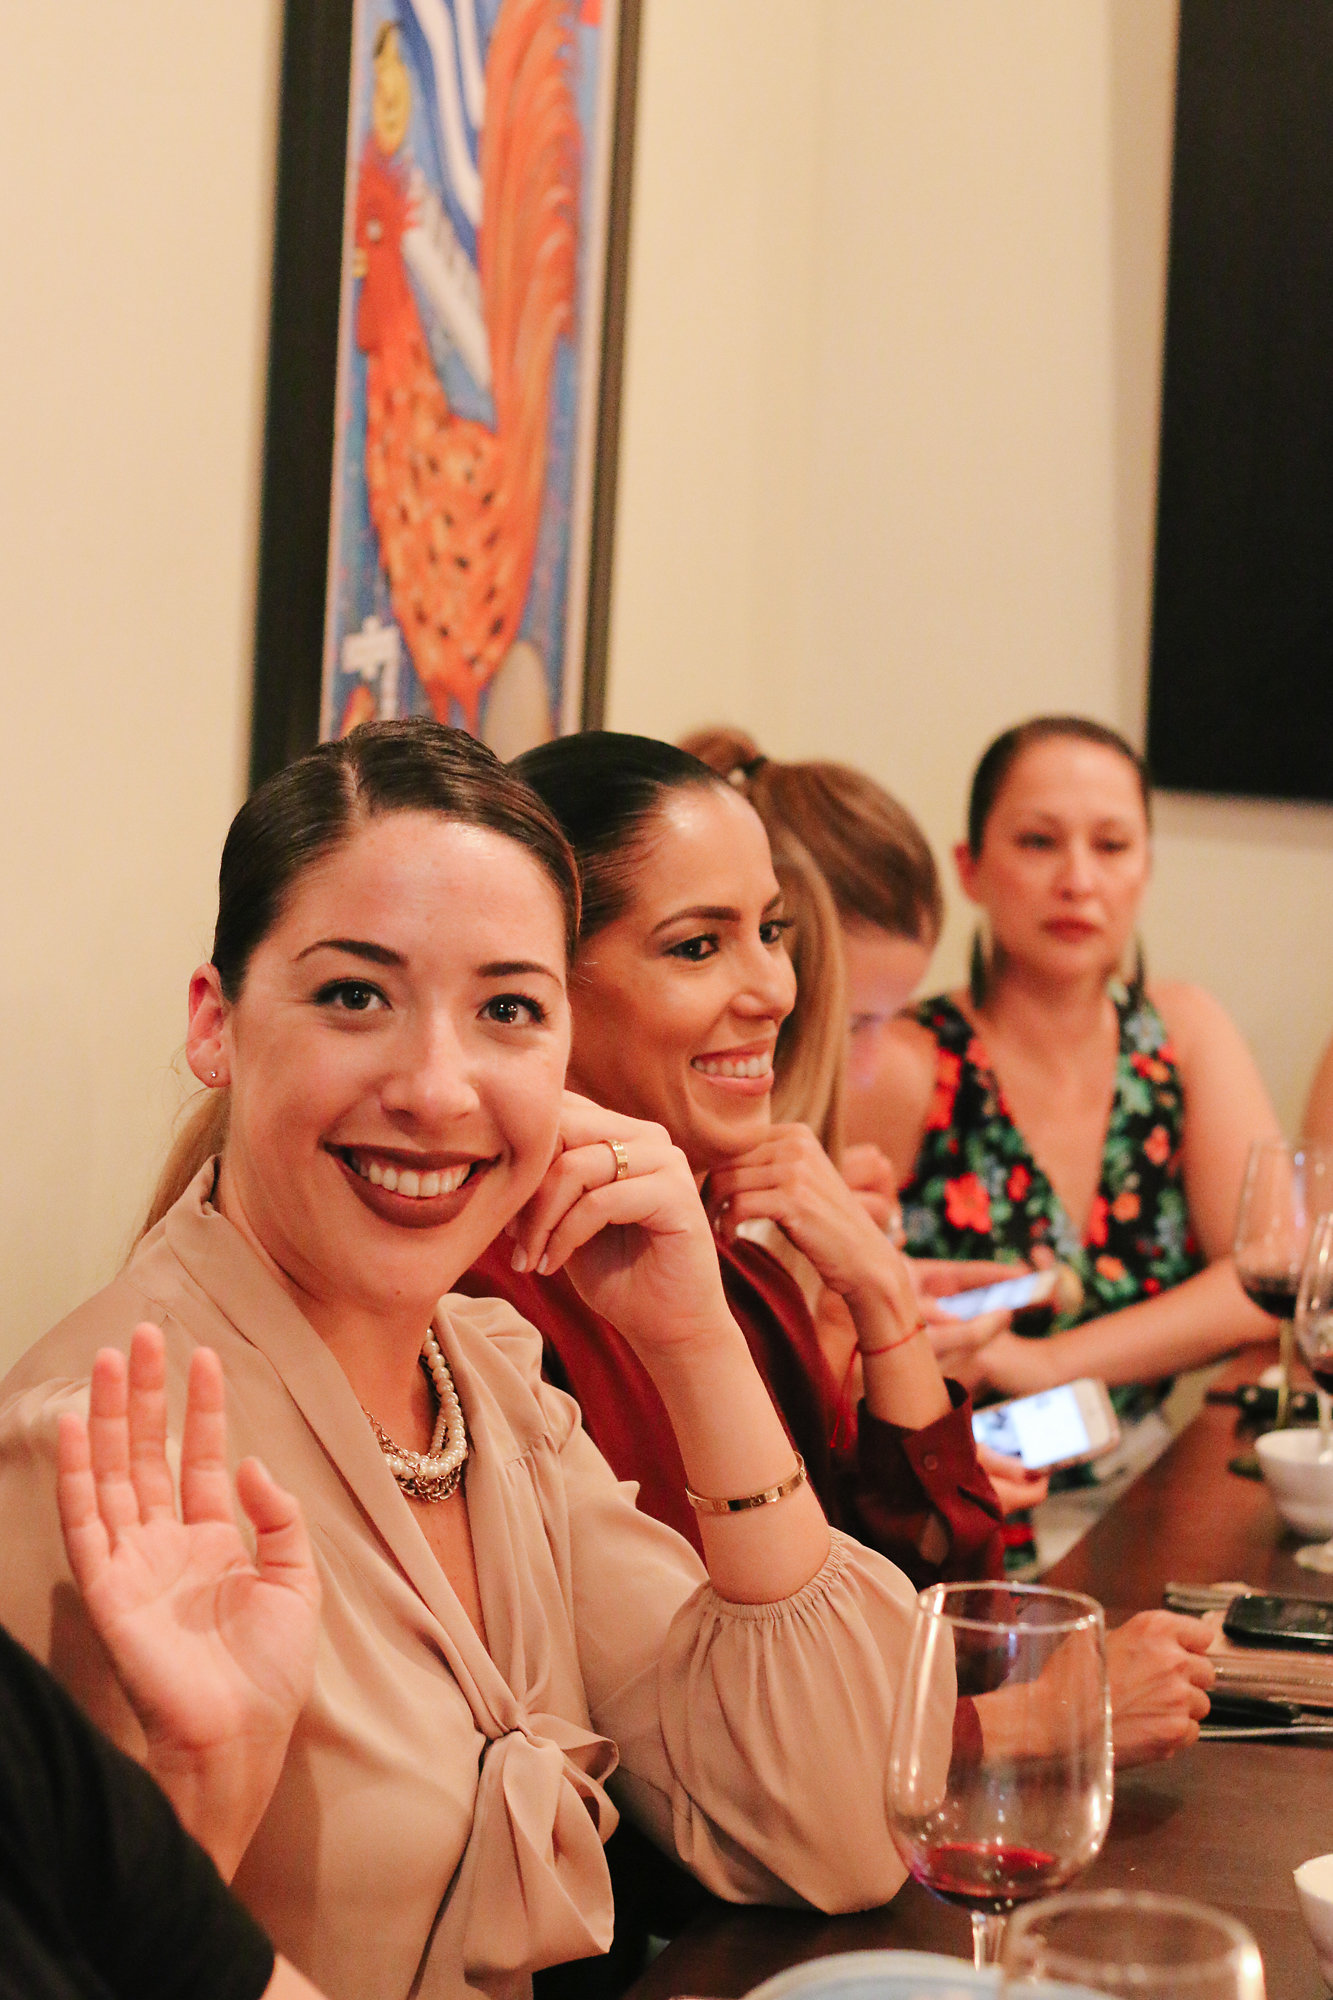 Women Who Wine_Uncorked Conversations_Off The Mile_Miami Wine Events_Wine Tasting Miami_67.jpg